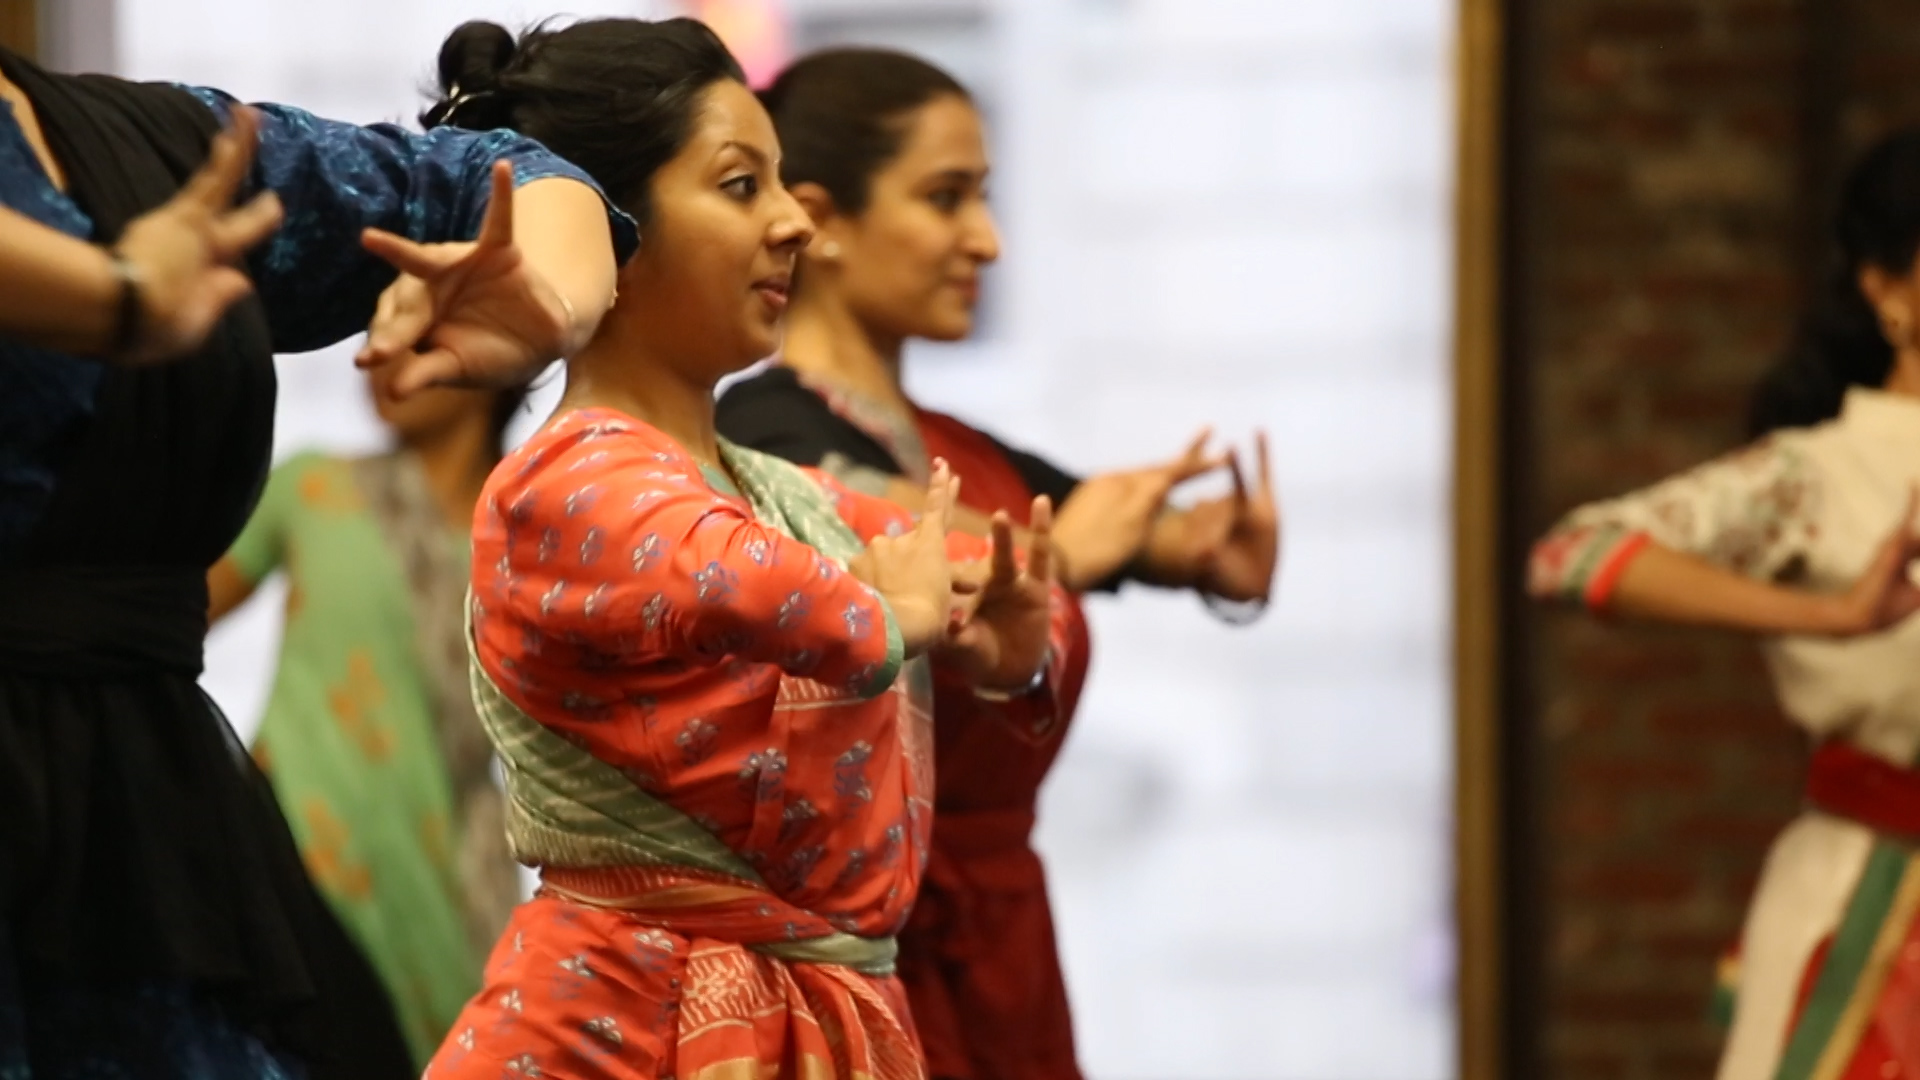 Bharatanatyam: Indian Dance - Bharatanatyam survived colonial oppression to exemplify Indian identity both at home and abroad.Season 1, Episode 11